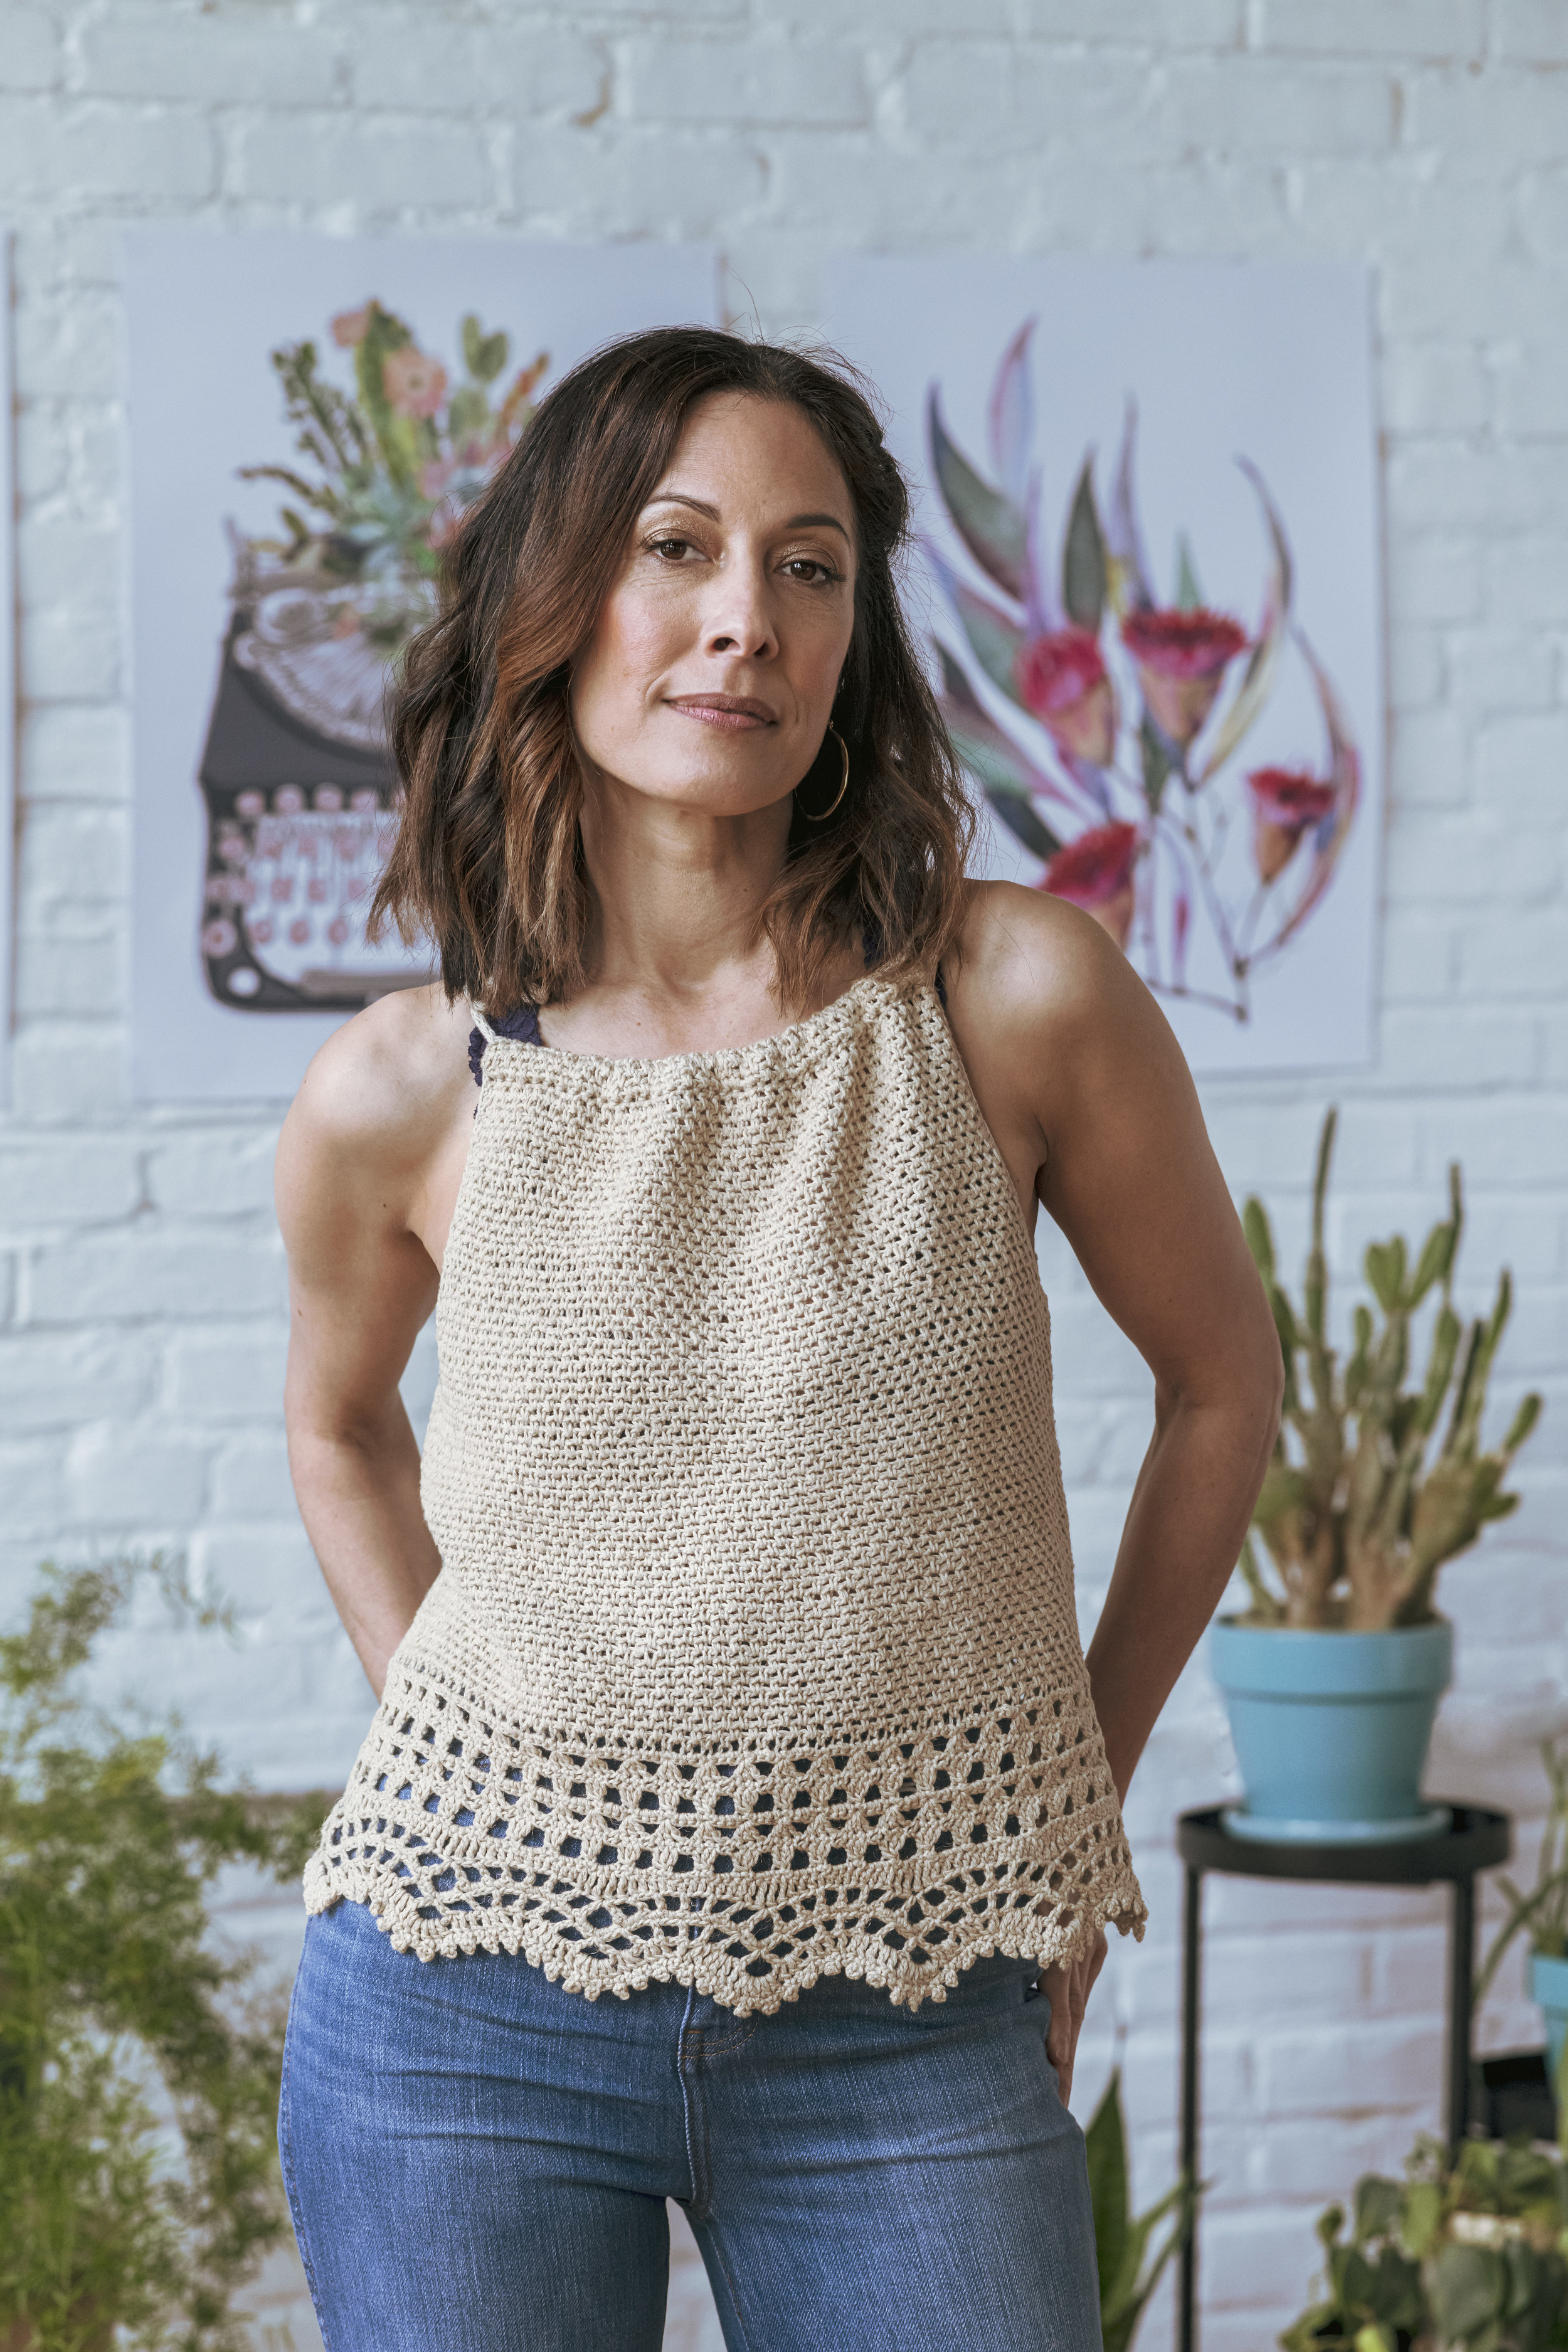 Canyon Camisole by Amy Gunderson. Image by Linette Kielinski